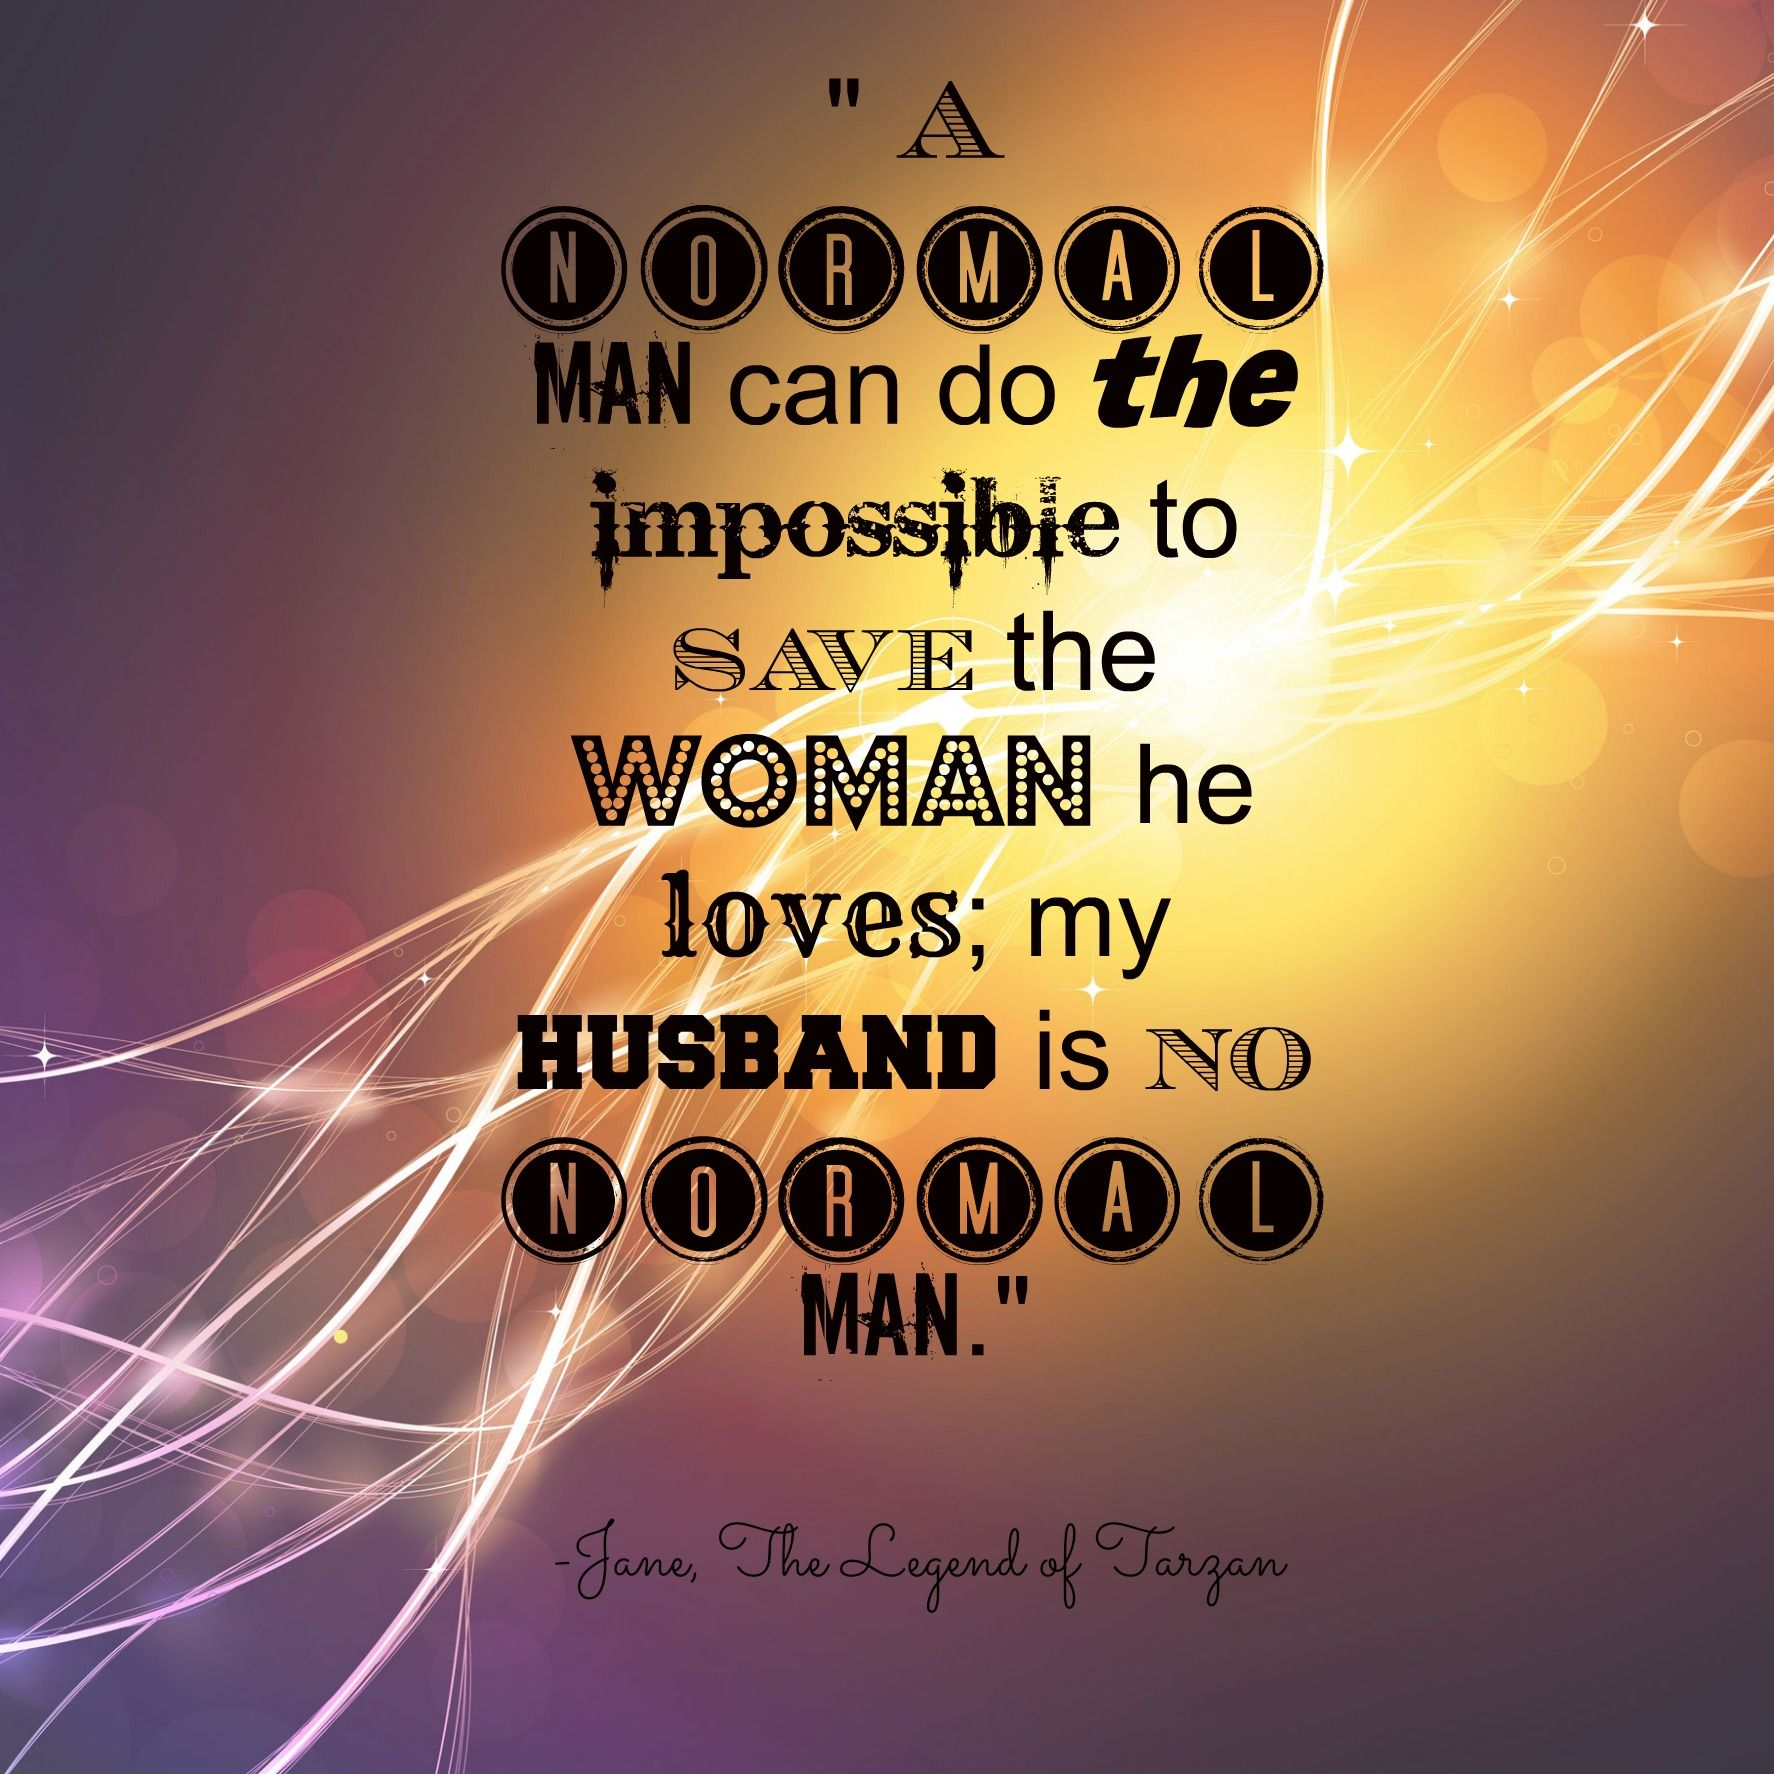 A Normal Man Can Do The Impossible To Save The Woman He Loves; My